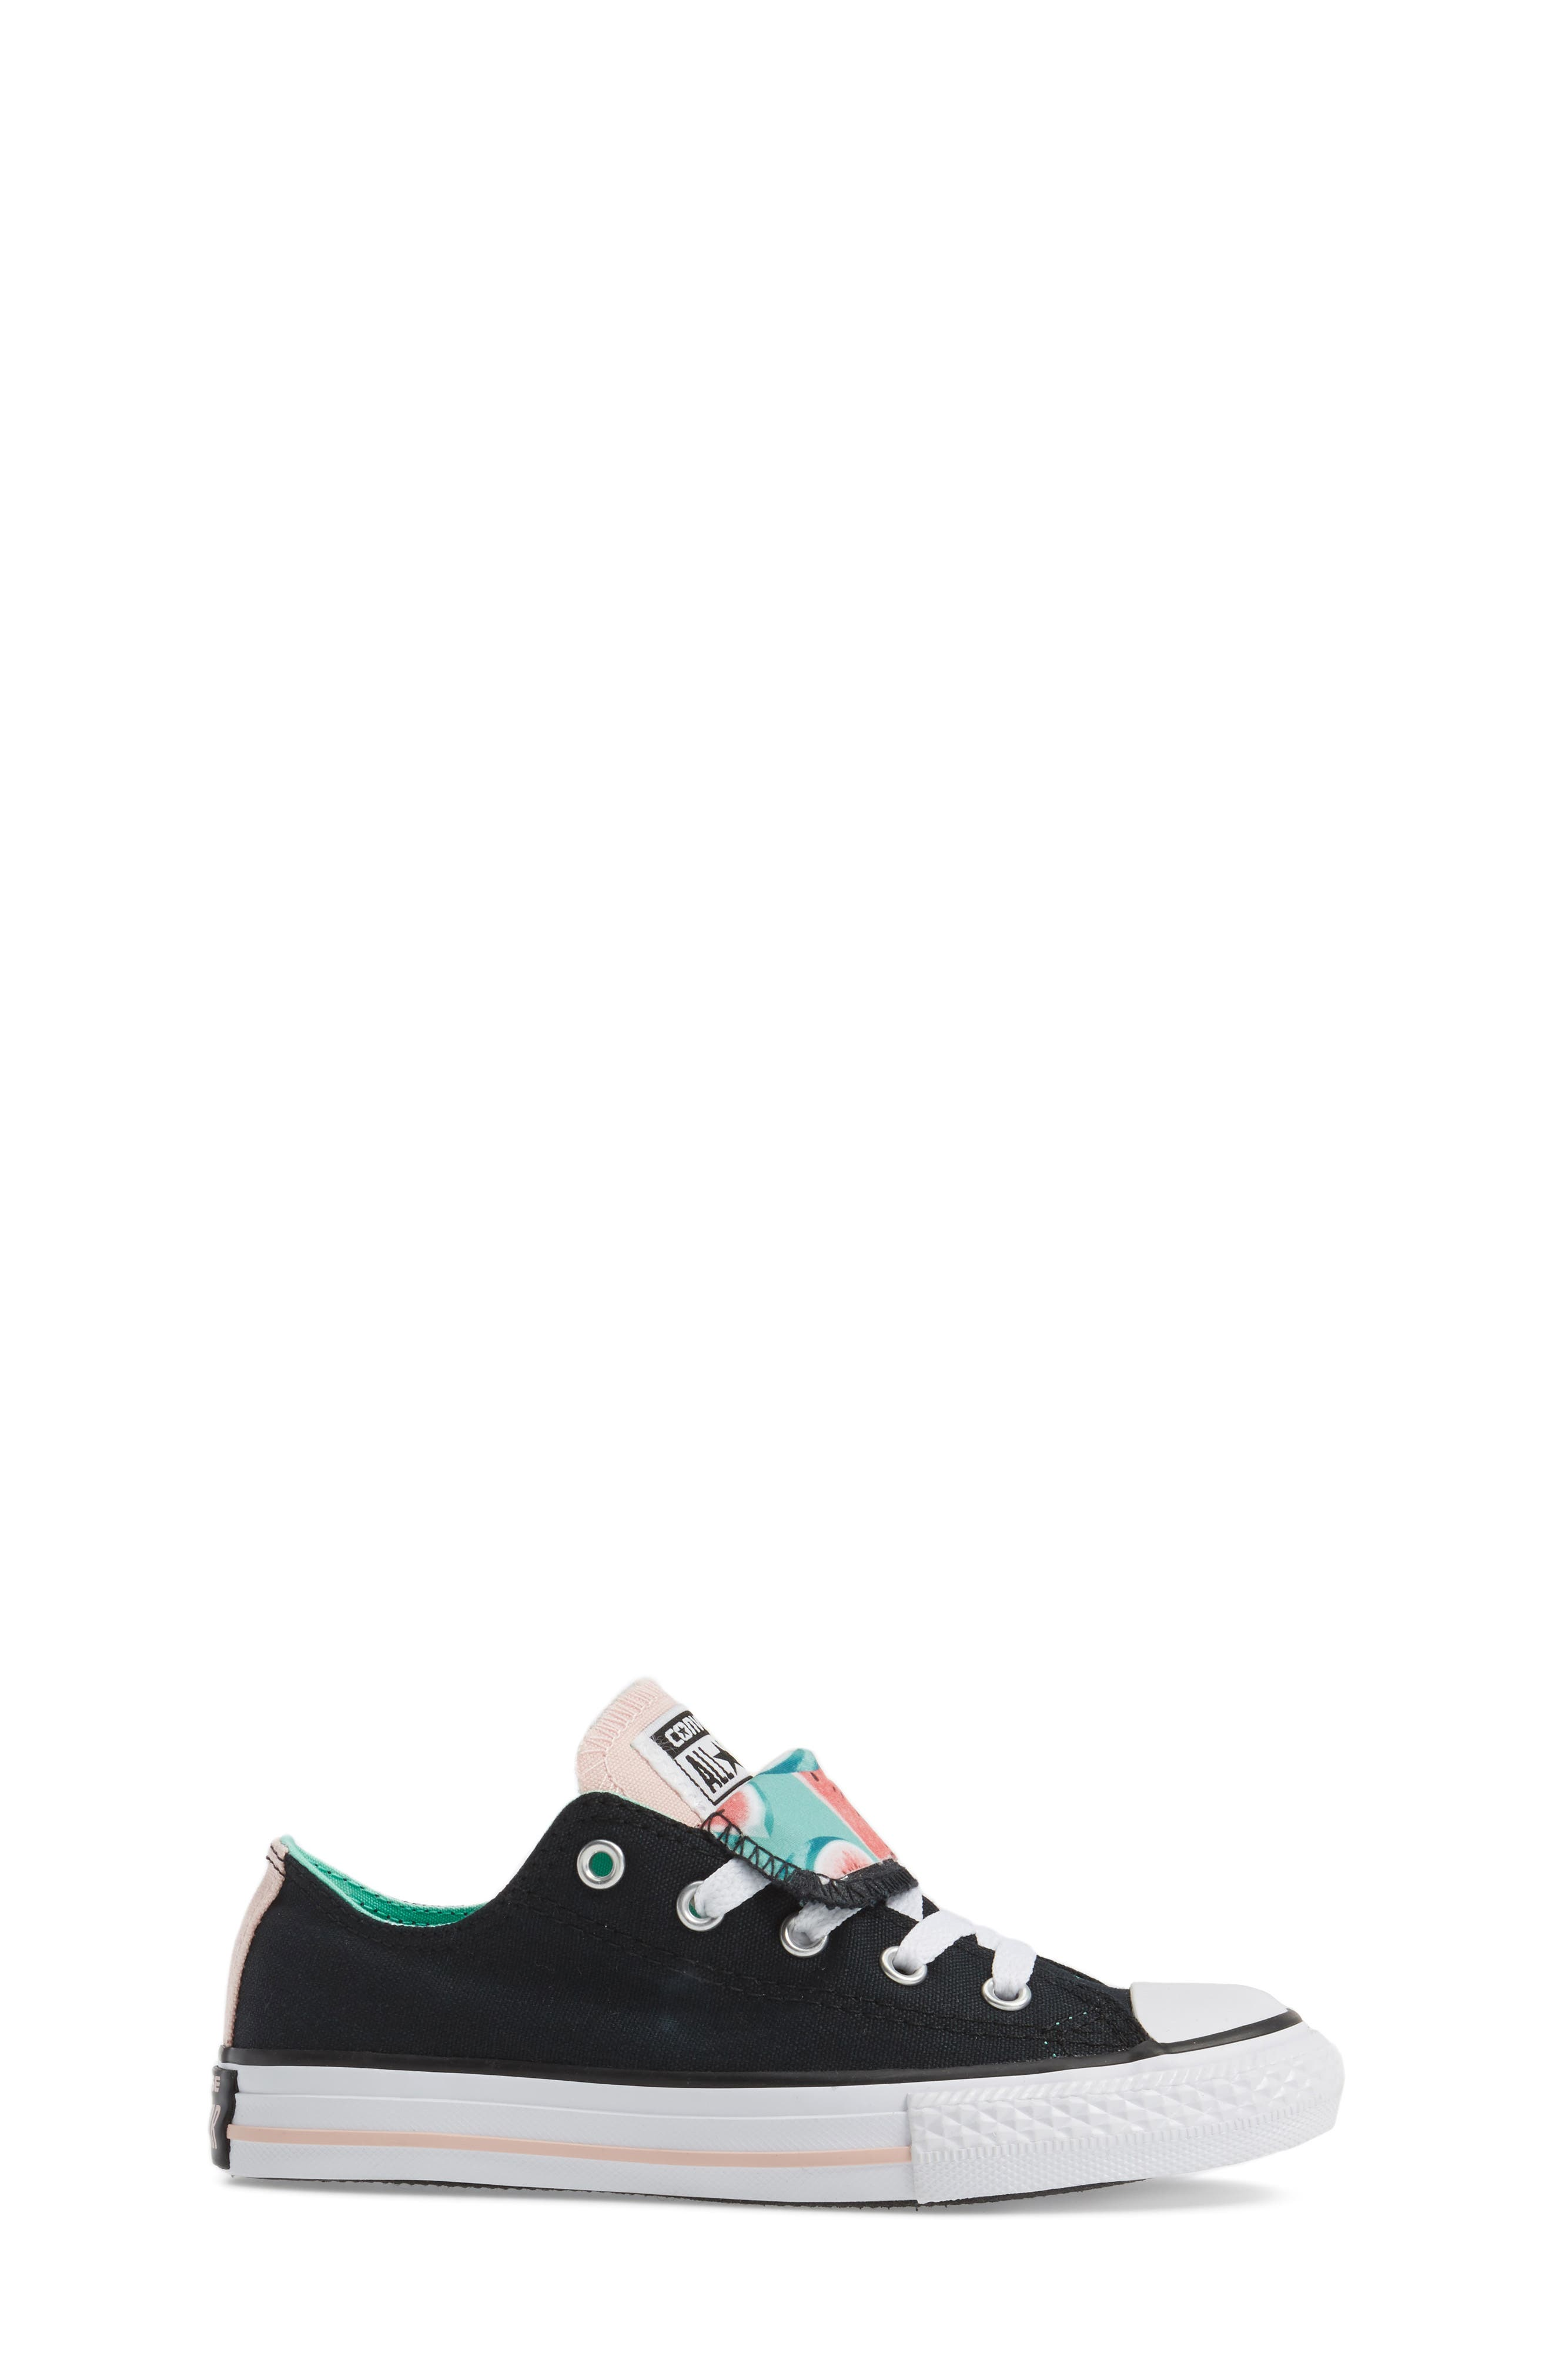 Chuck Taylor<sup>®</sup> All Star<sup>®</sup> Watermelon Print Sneaker,                             Alternate thumbnail 3, color,                             Black